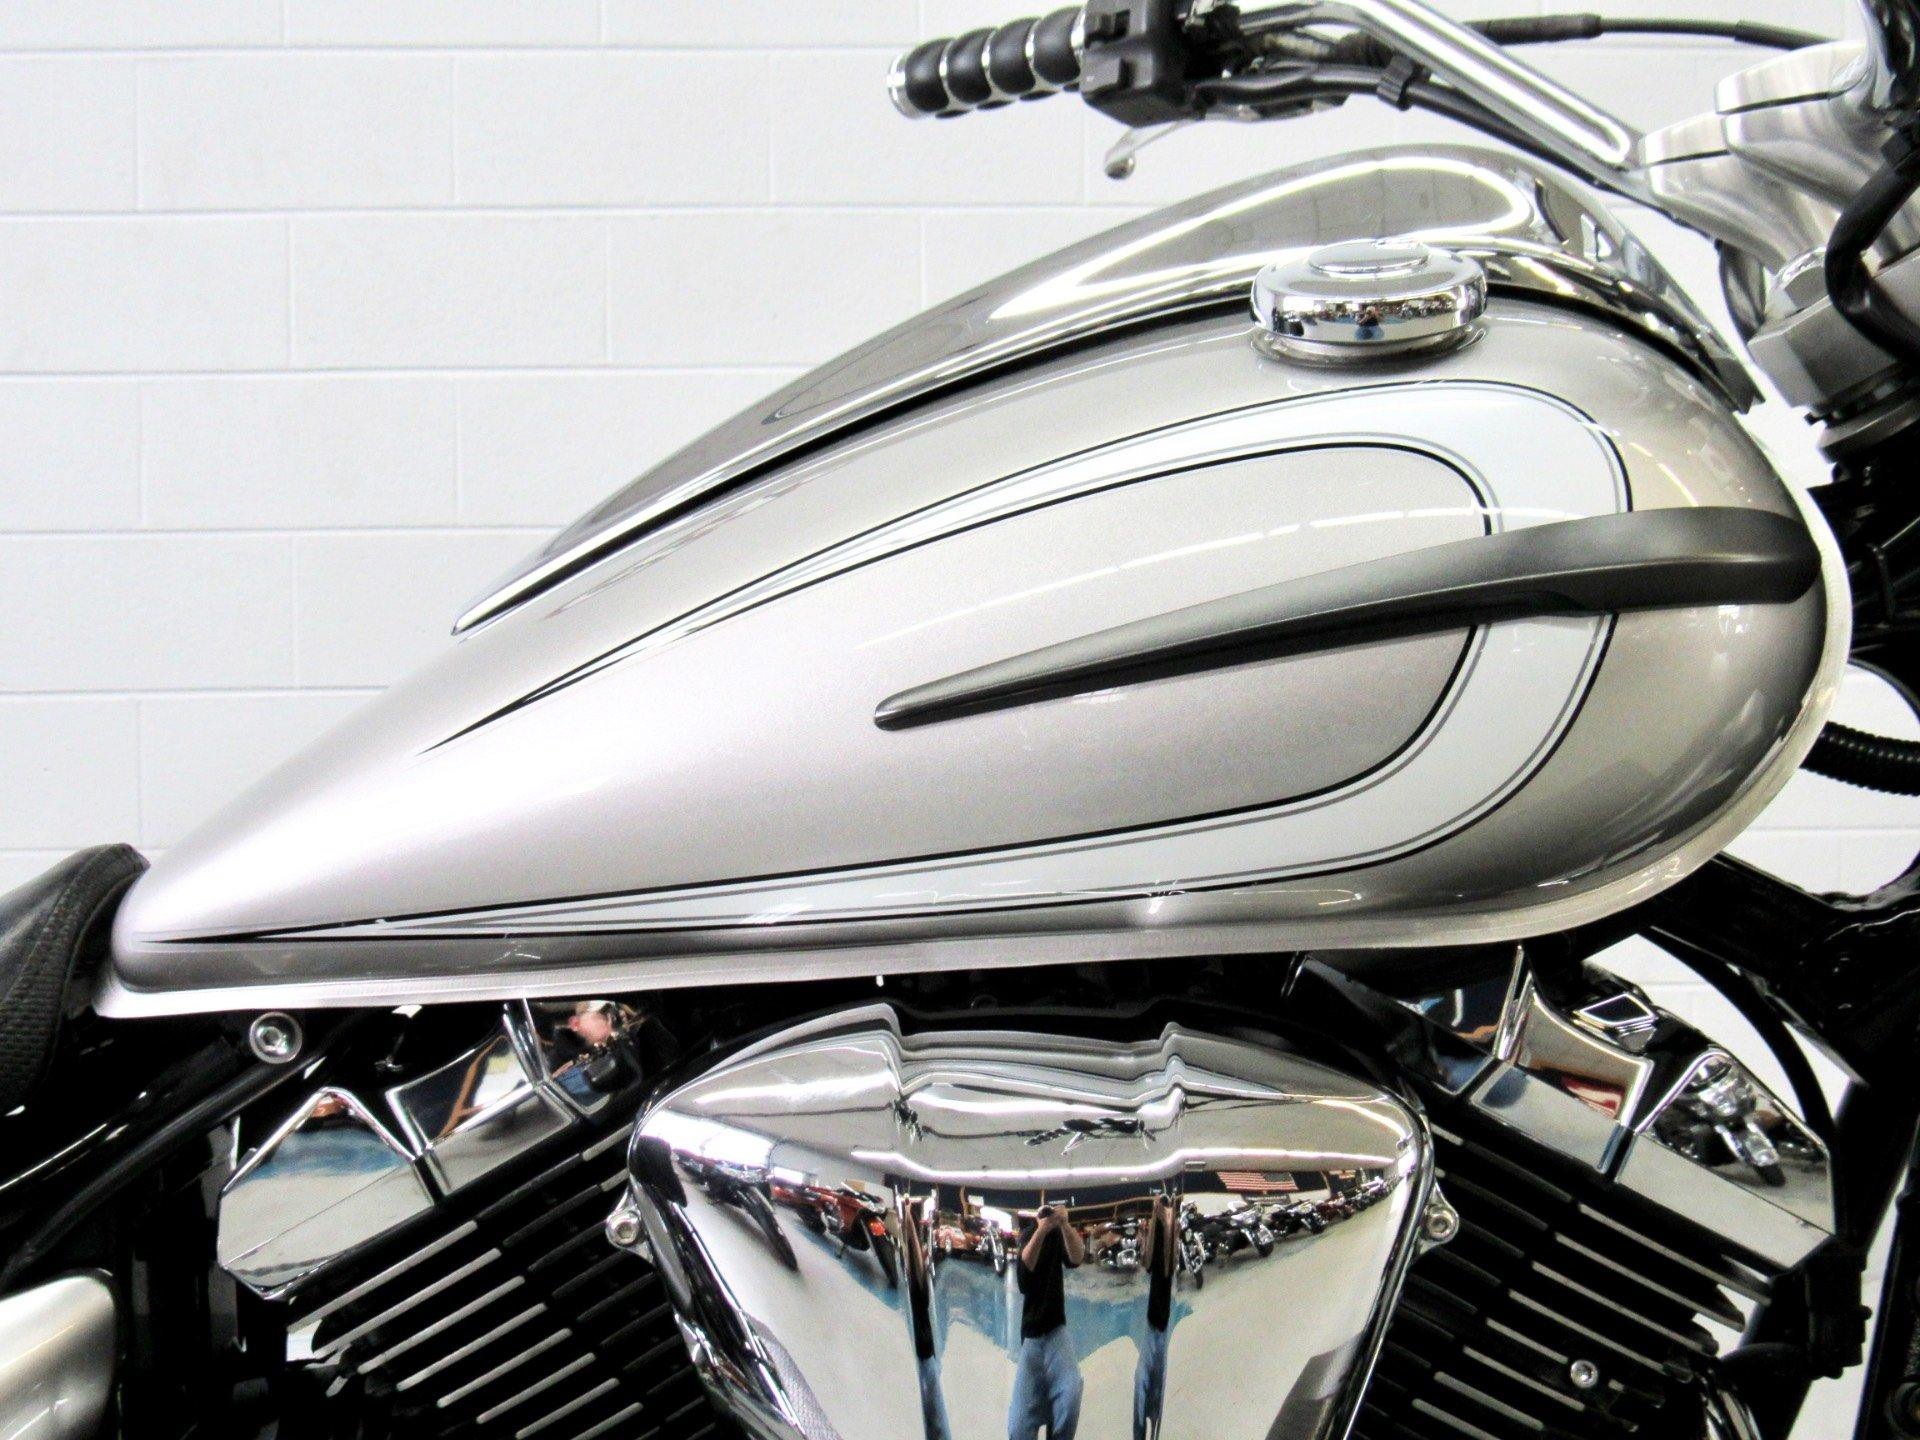 2012 Yamaha V Star 950  in Fredericksburg, Virginia - Photo 13